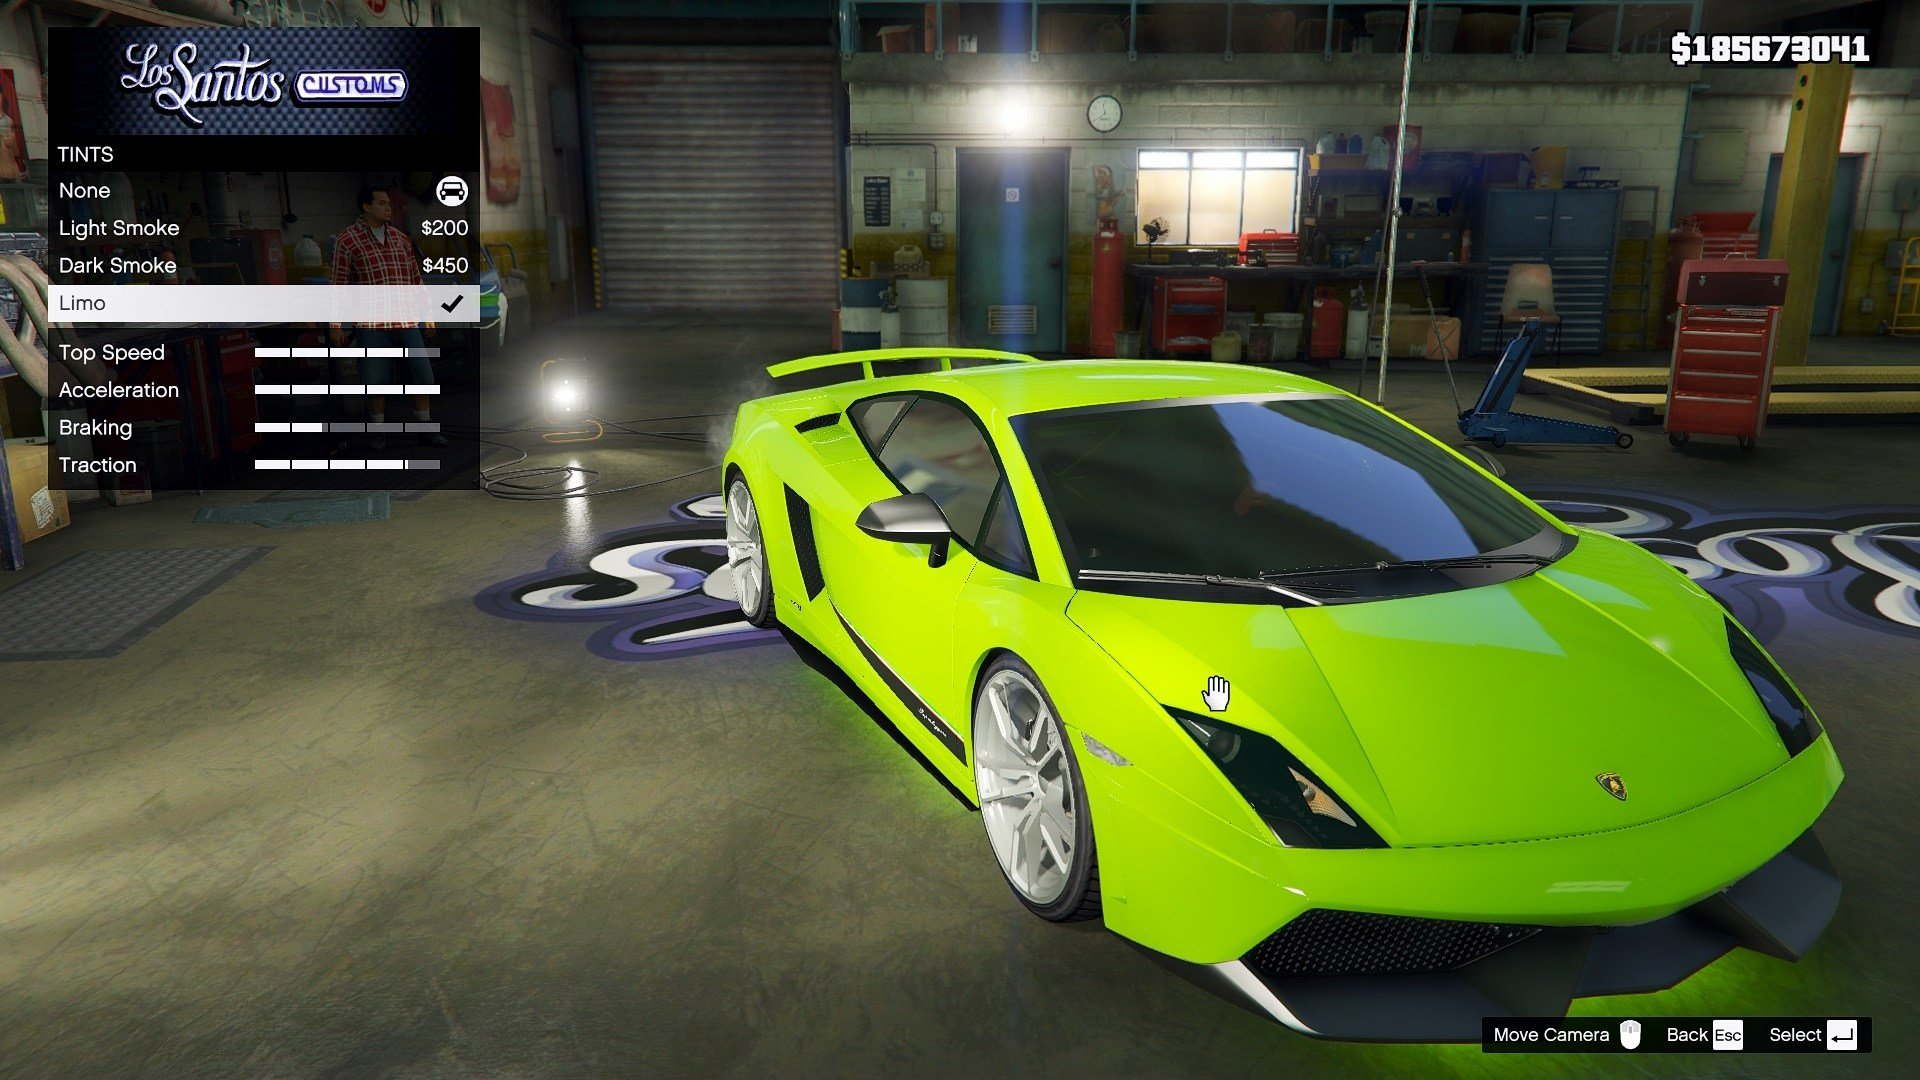 New Lamborghini Badges For Pegassi Cars Gta5 Mods Com On This Month